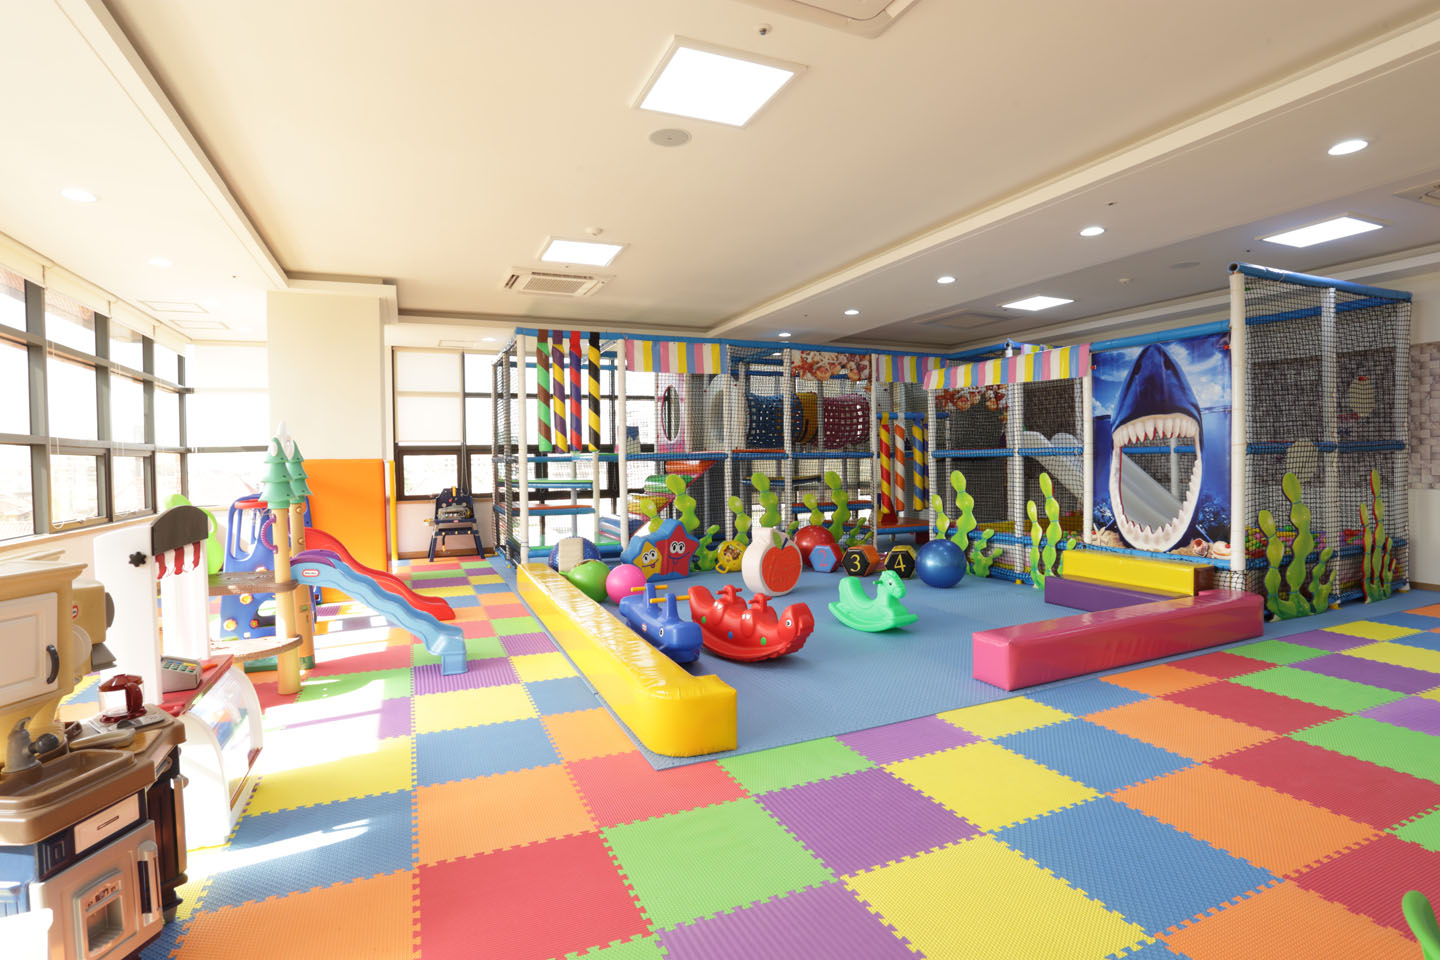 Childrens Playrooms children's playroom - de castle royal